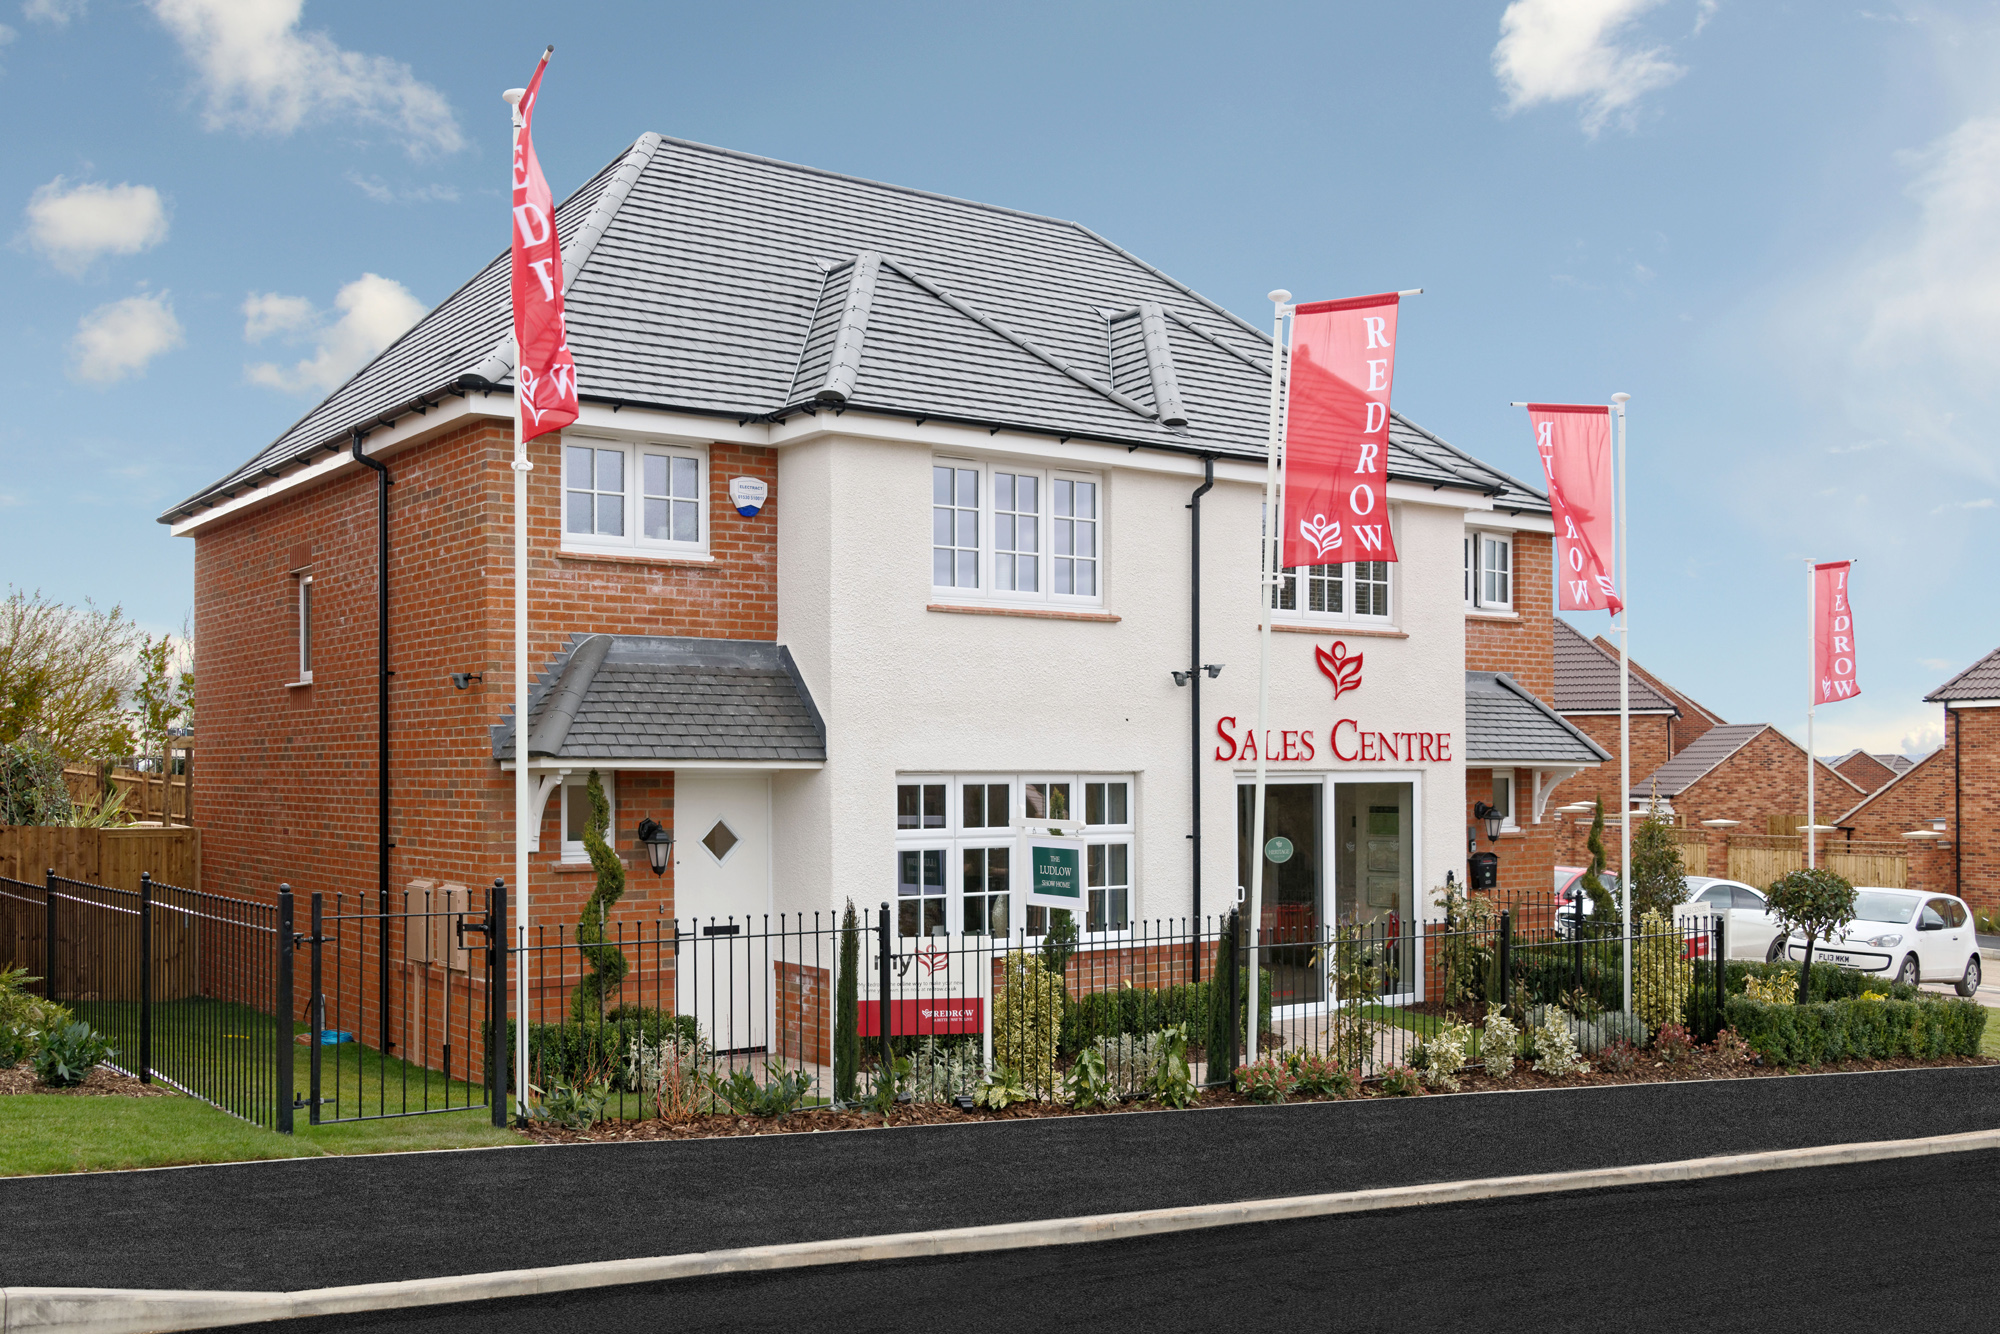 Redrow launches show home at new Chellaston development